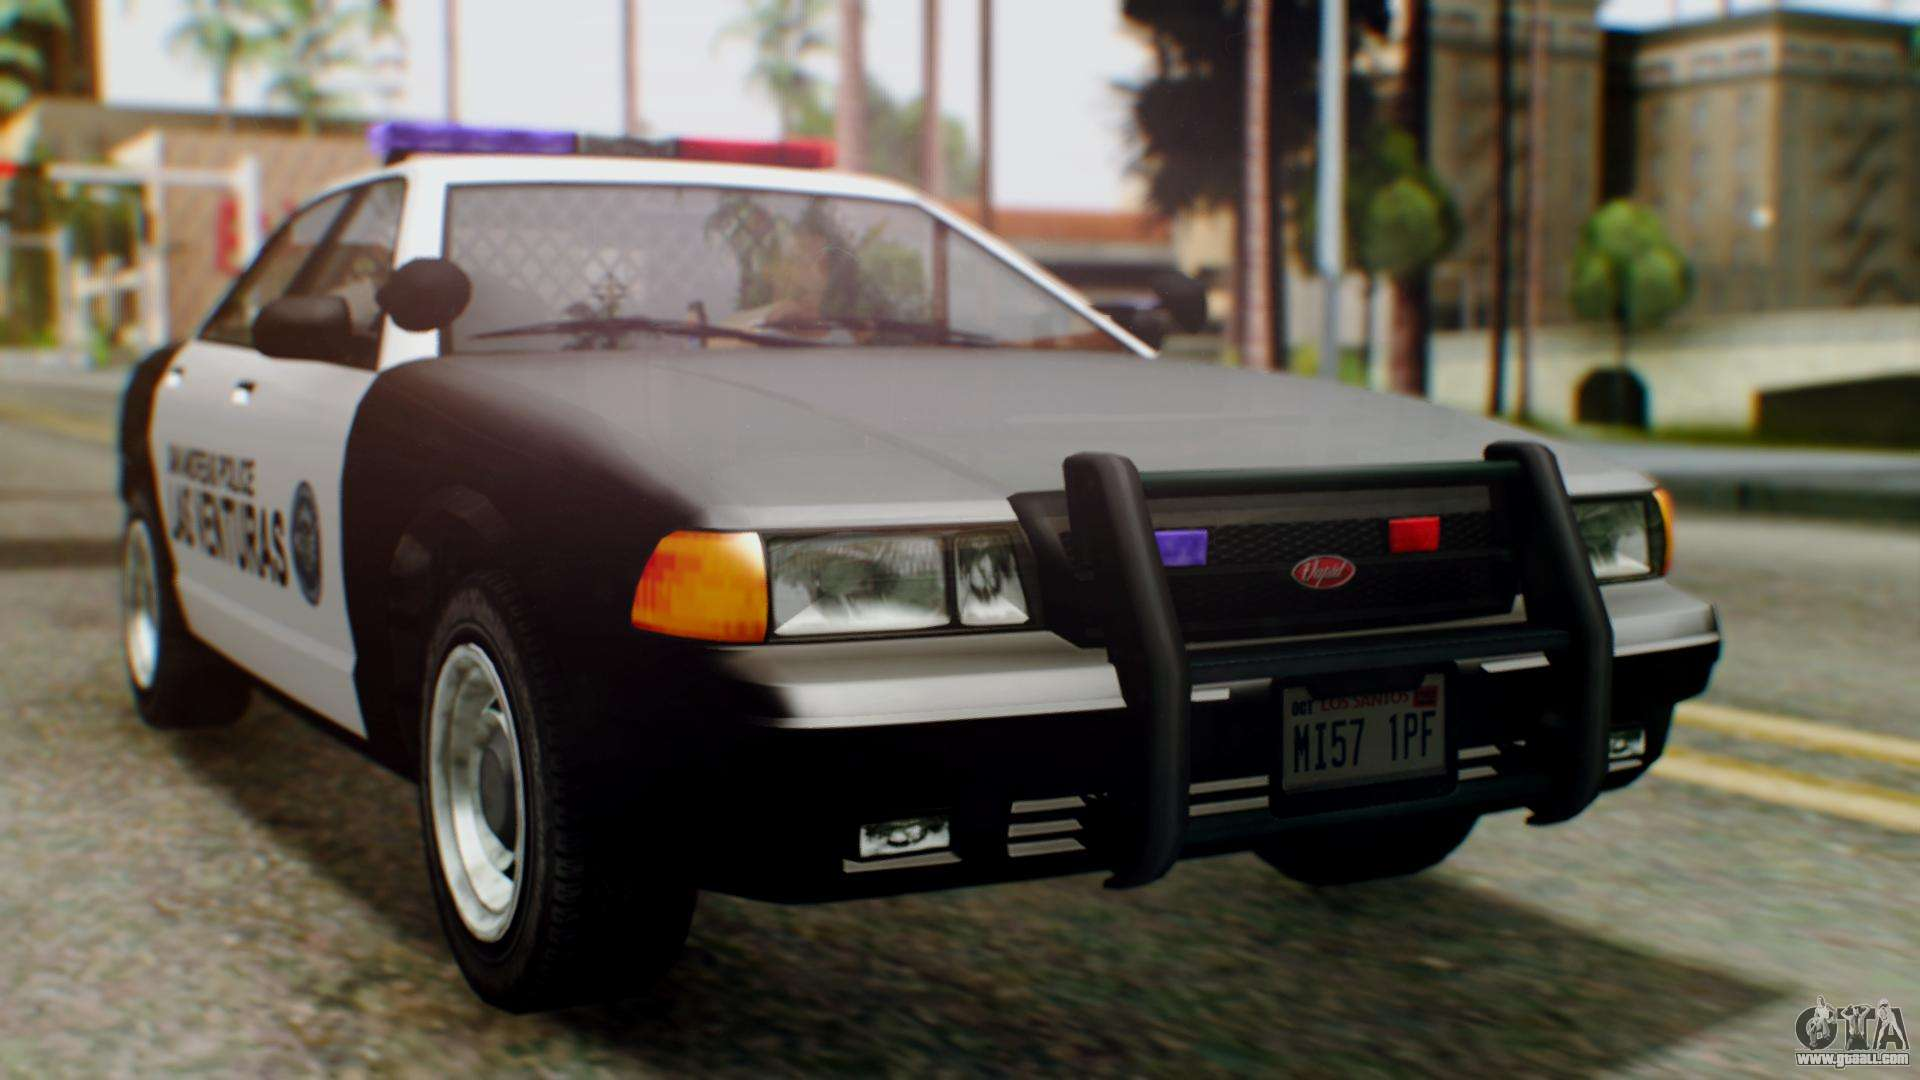 Official Gta 5 Cop Cars: Rare Police Vehicles Spawn Naturally